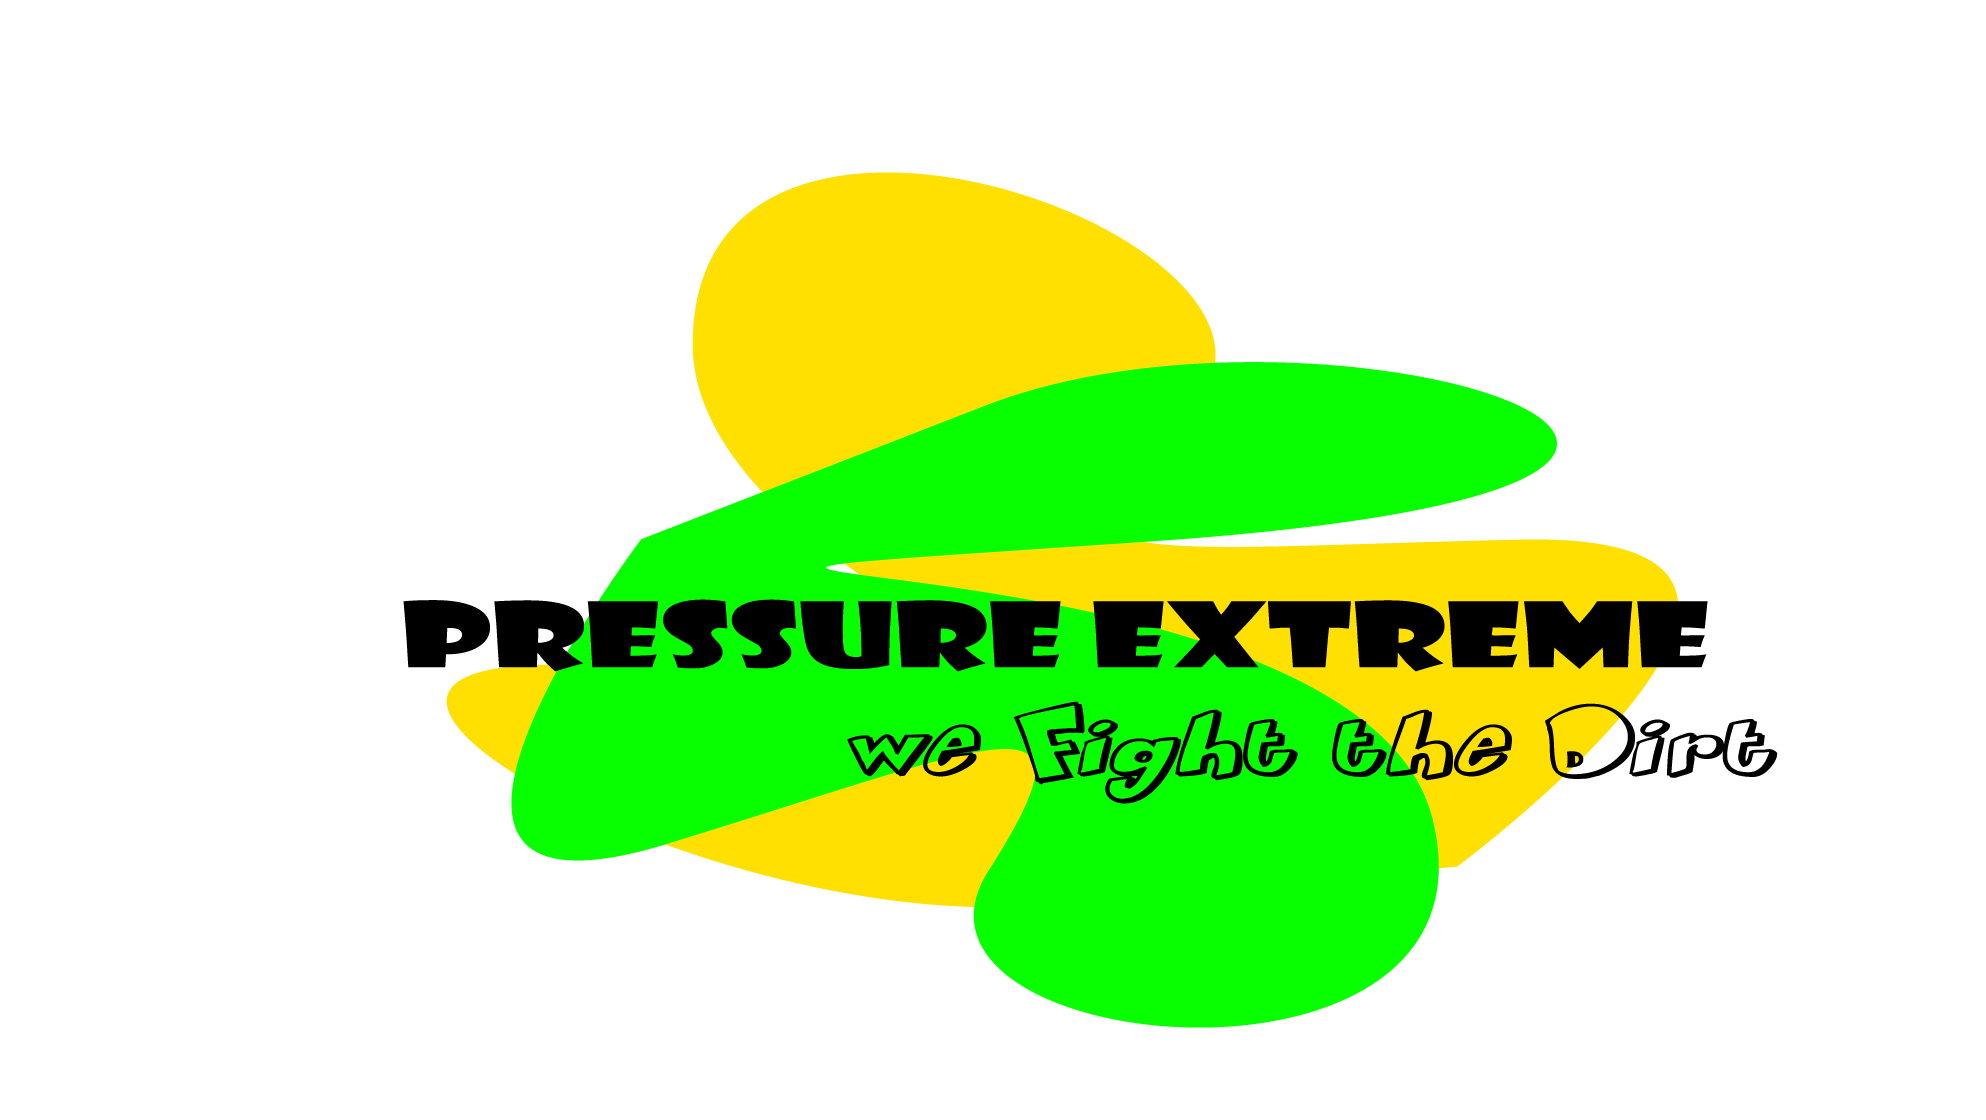 Logo Design by Safal Adam - Entry No. 9 in the Logo Design Contest New Logo Design for PRESSUREXTREME.